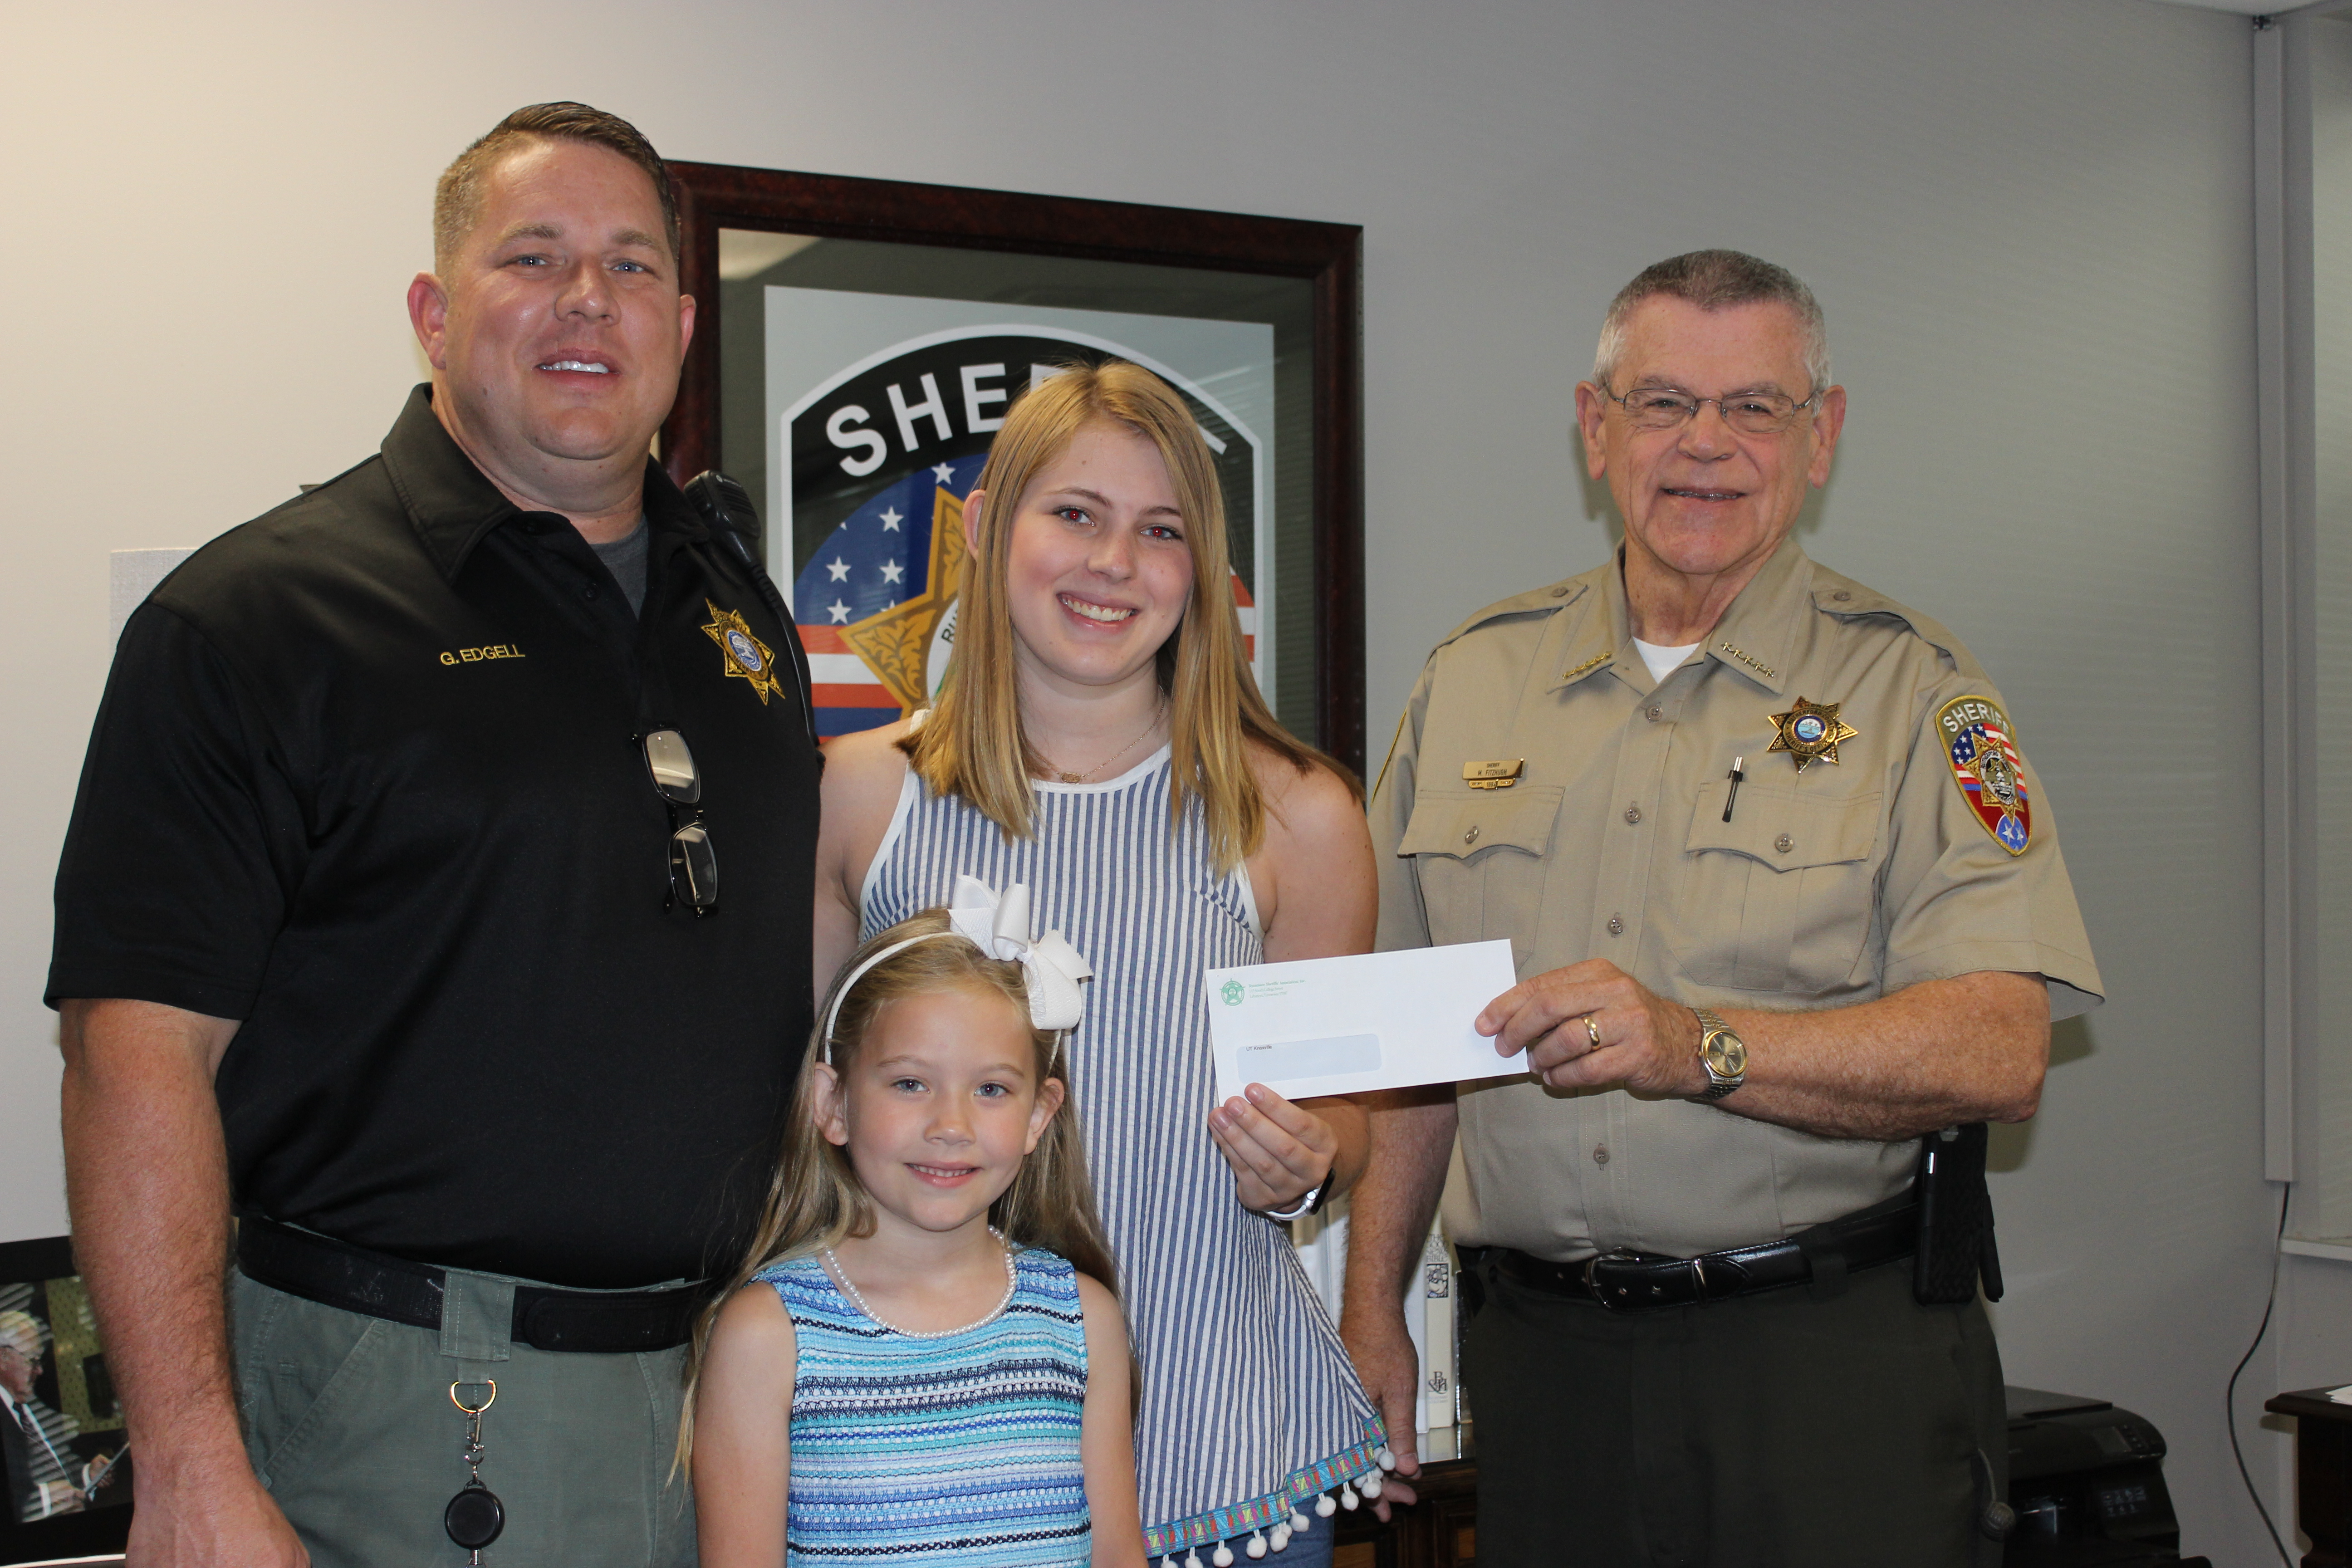 Children of three Sheriff's Office employees receive scholarships